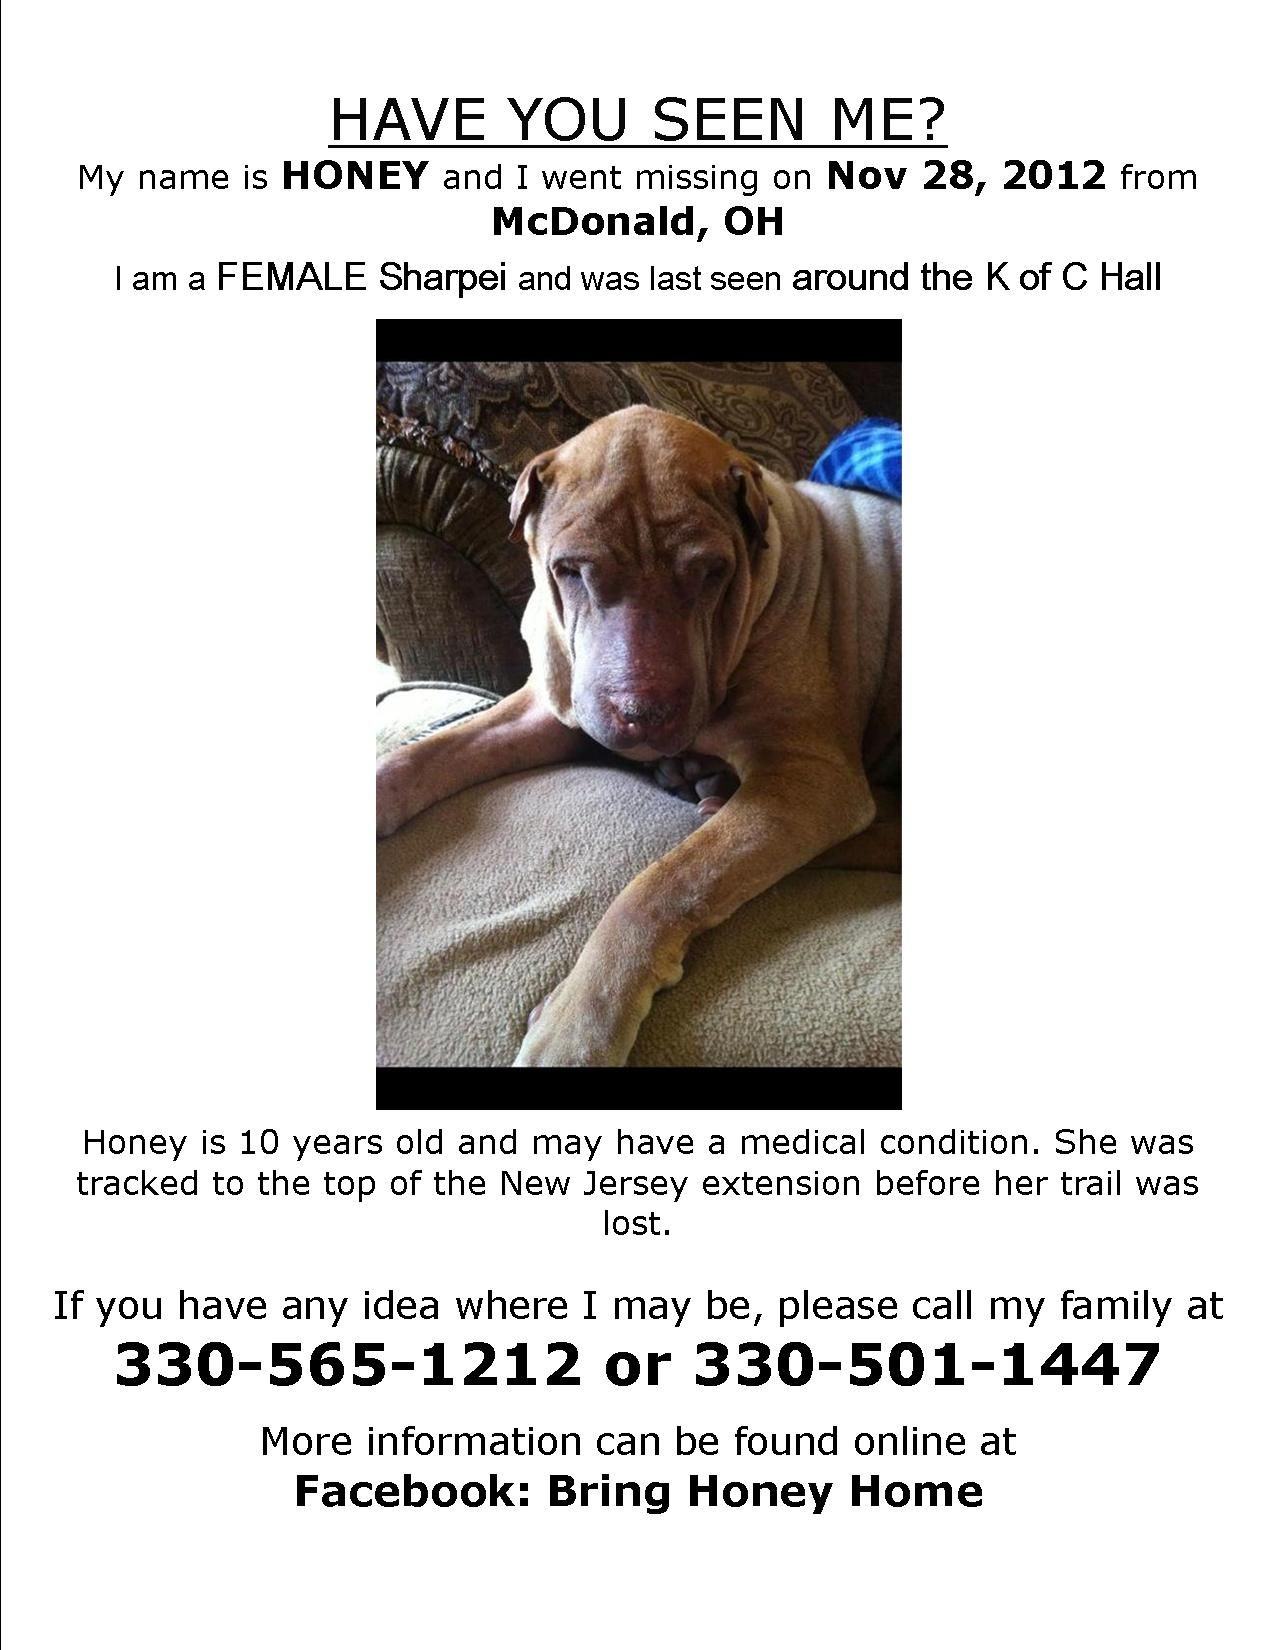 Honey Was Missing For Several Days Before She Was Found In The